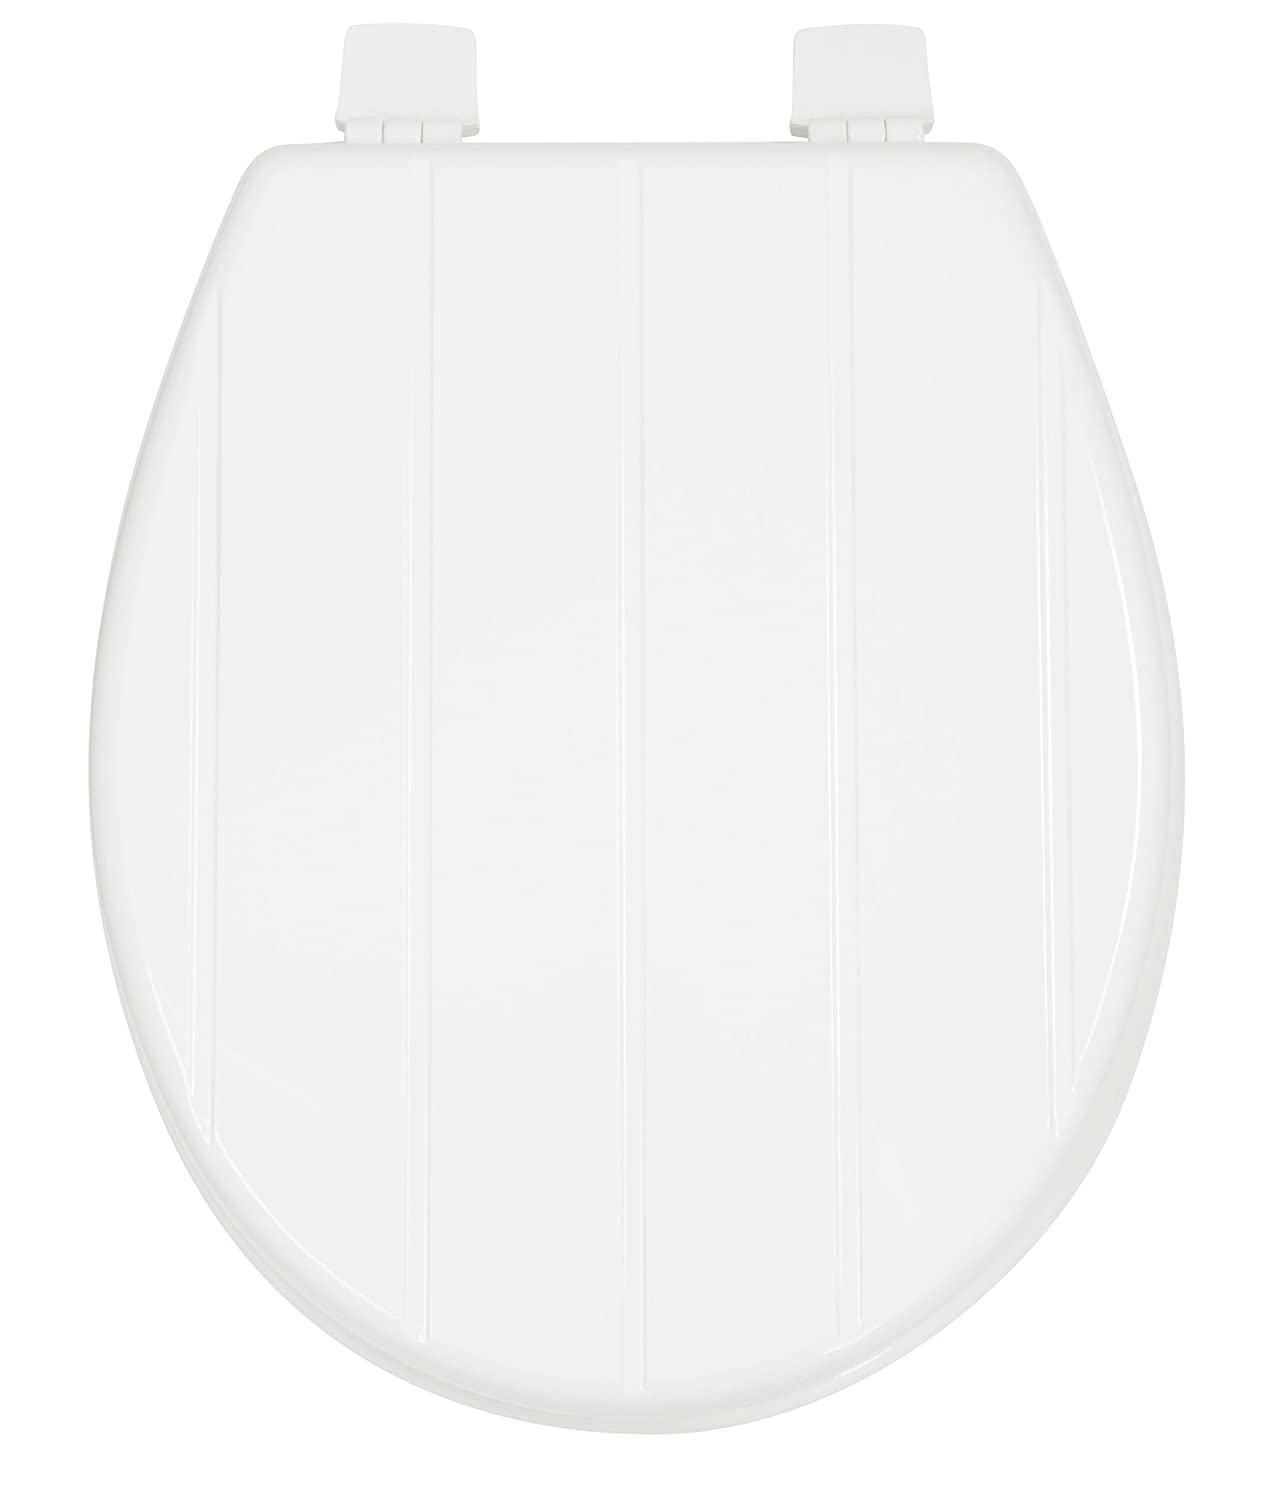 Croydex Sit Tight Buttermere Toilet Seat, Wood, White, 43.5 x 37.2 x 6 cm WL601922H